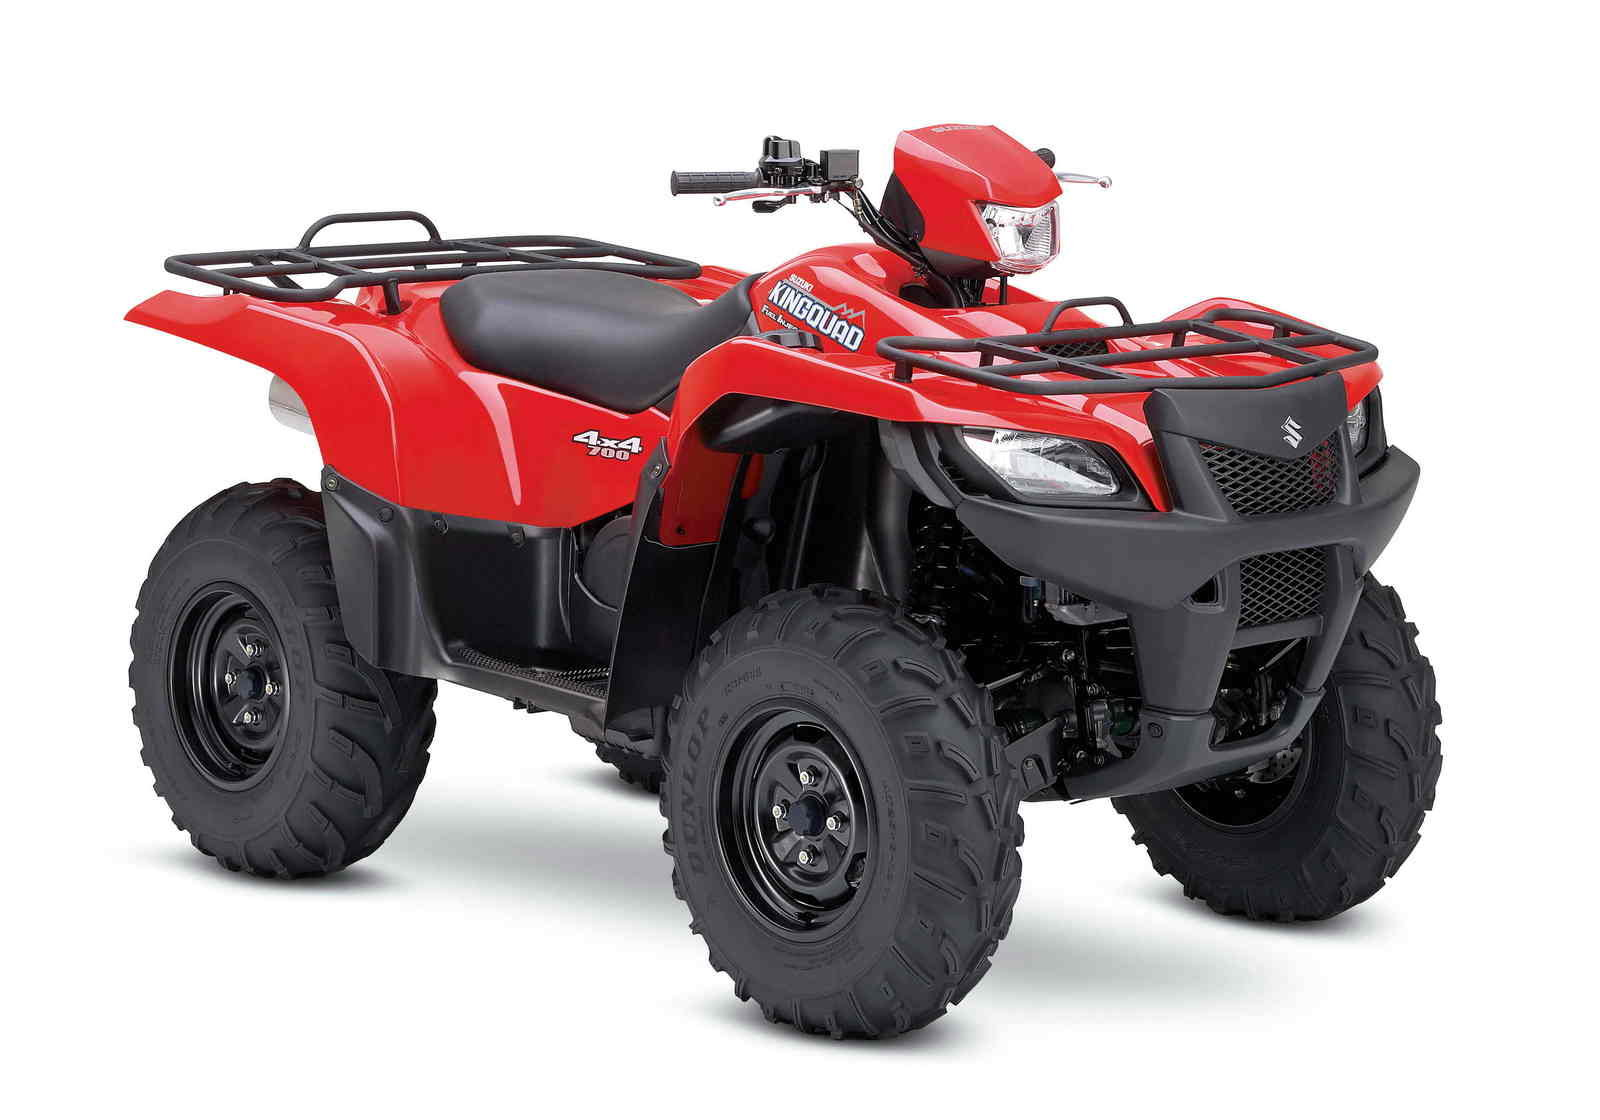 suzuki kingquad 700 4x4 specs 2005 2006 2007 2008 2009 2010 2011 2012 2013 2014 2015. Black Bedroom Furniture Sets. Home Design Ideas